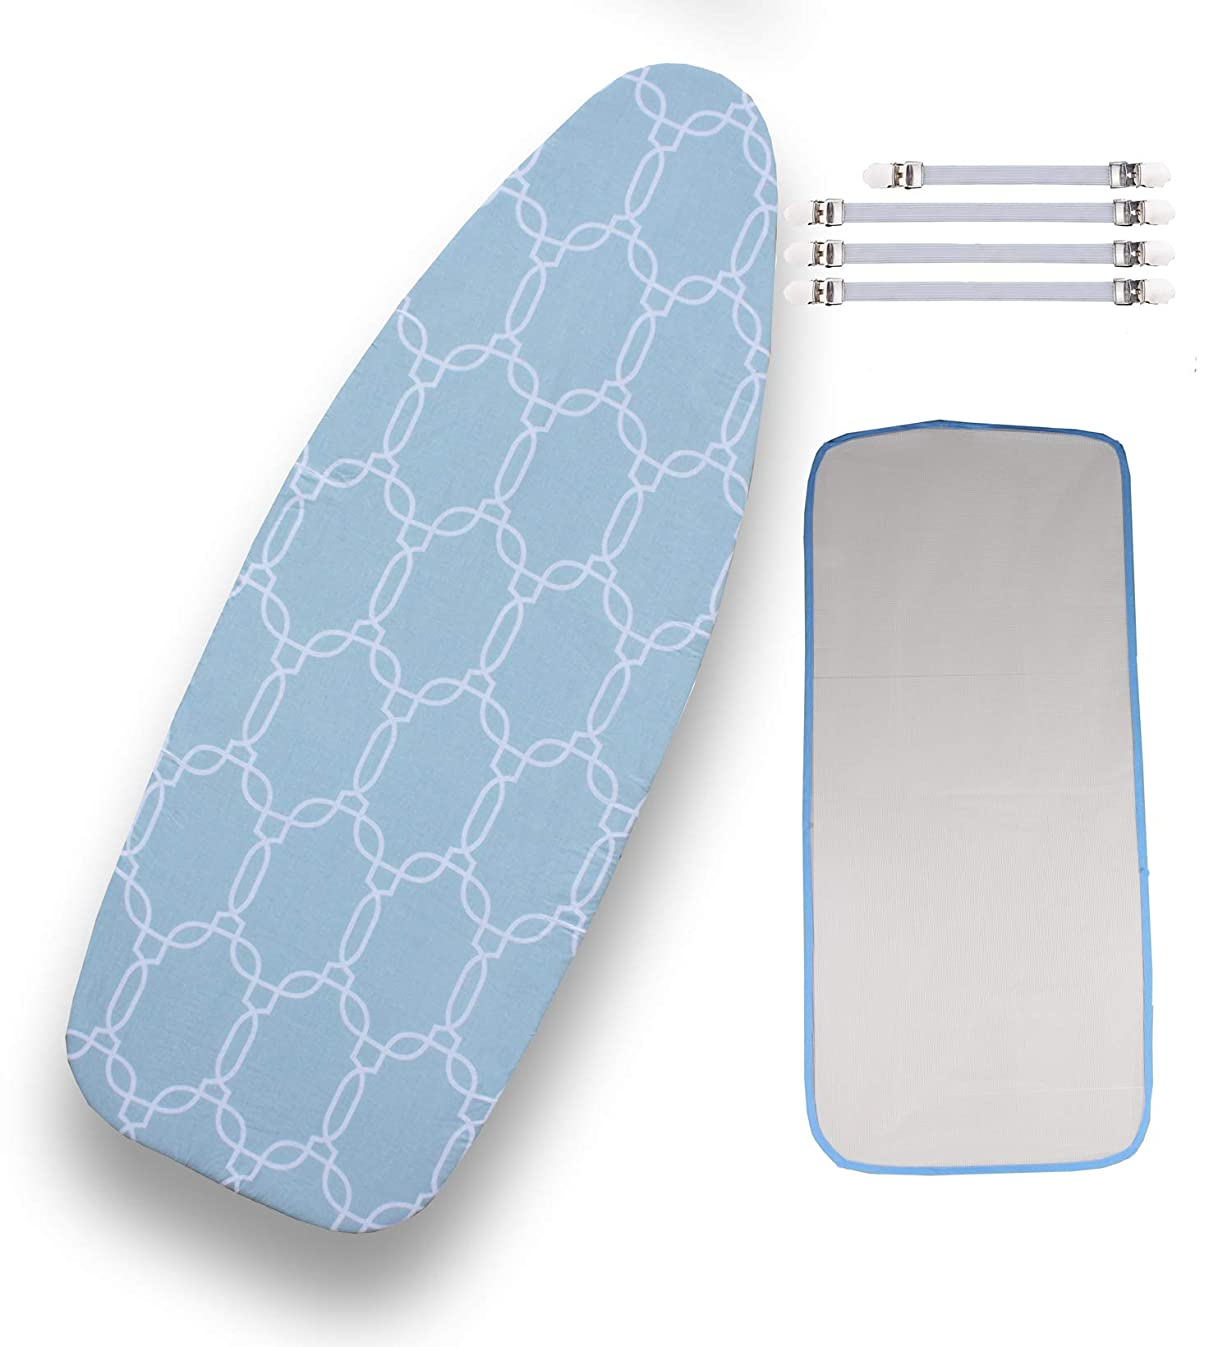 Extra-Wide Ironing Board Cover Bundle 6 Items: 1 Extra Thick Felt Pad, Heat Resistanta, and Scorch Resistant Cover [18